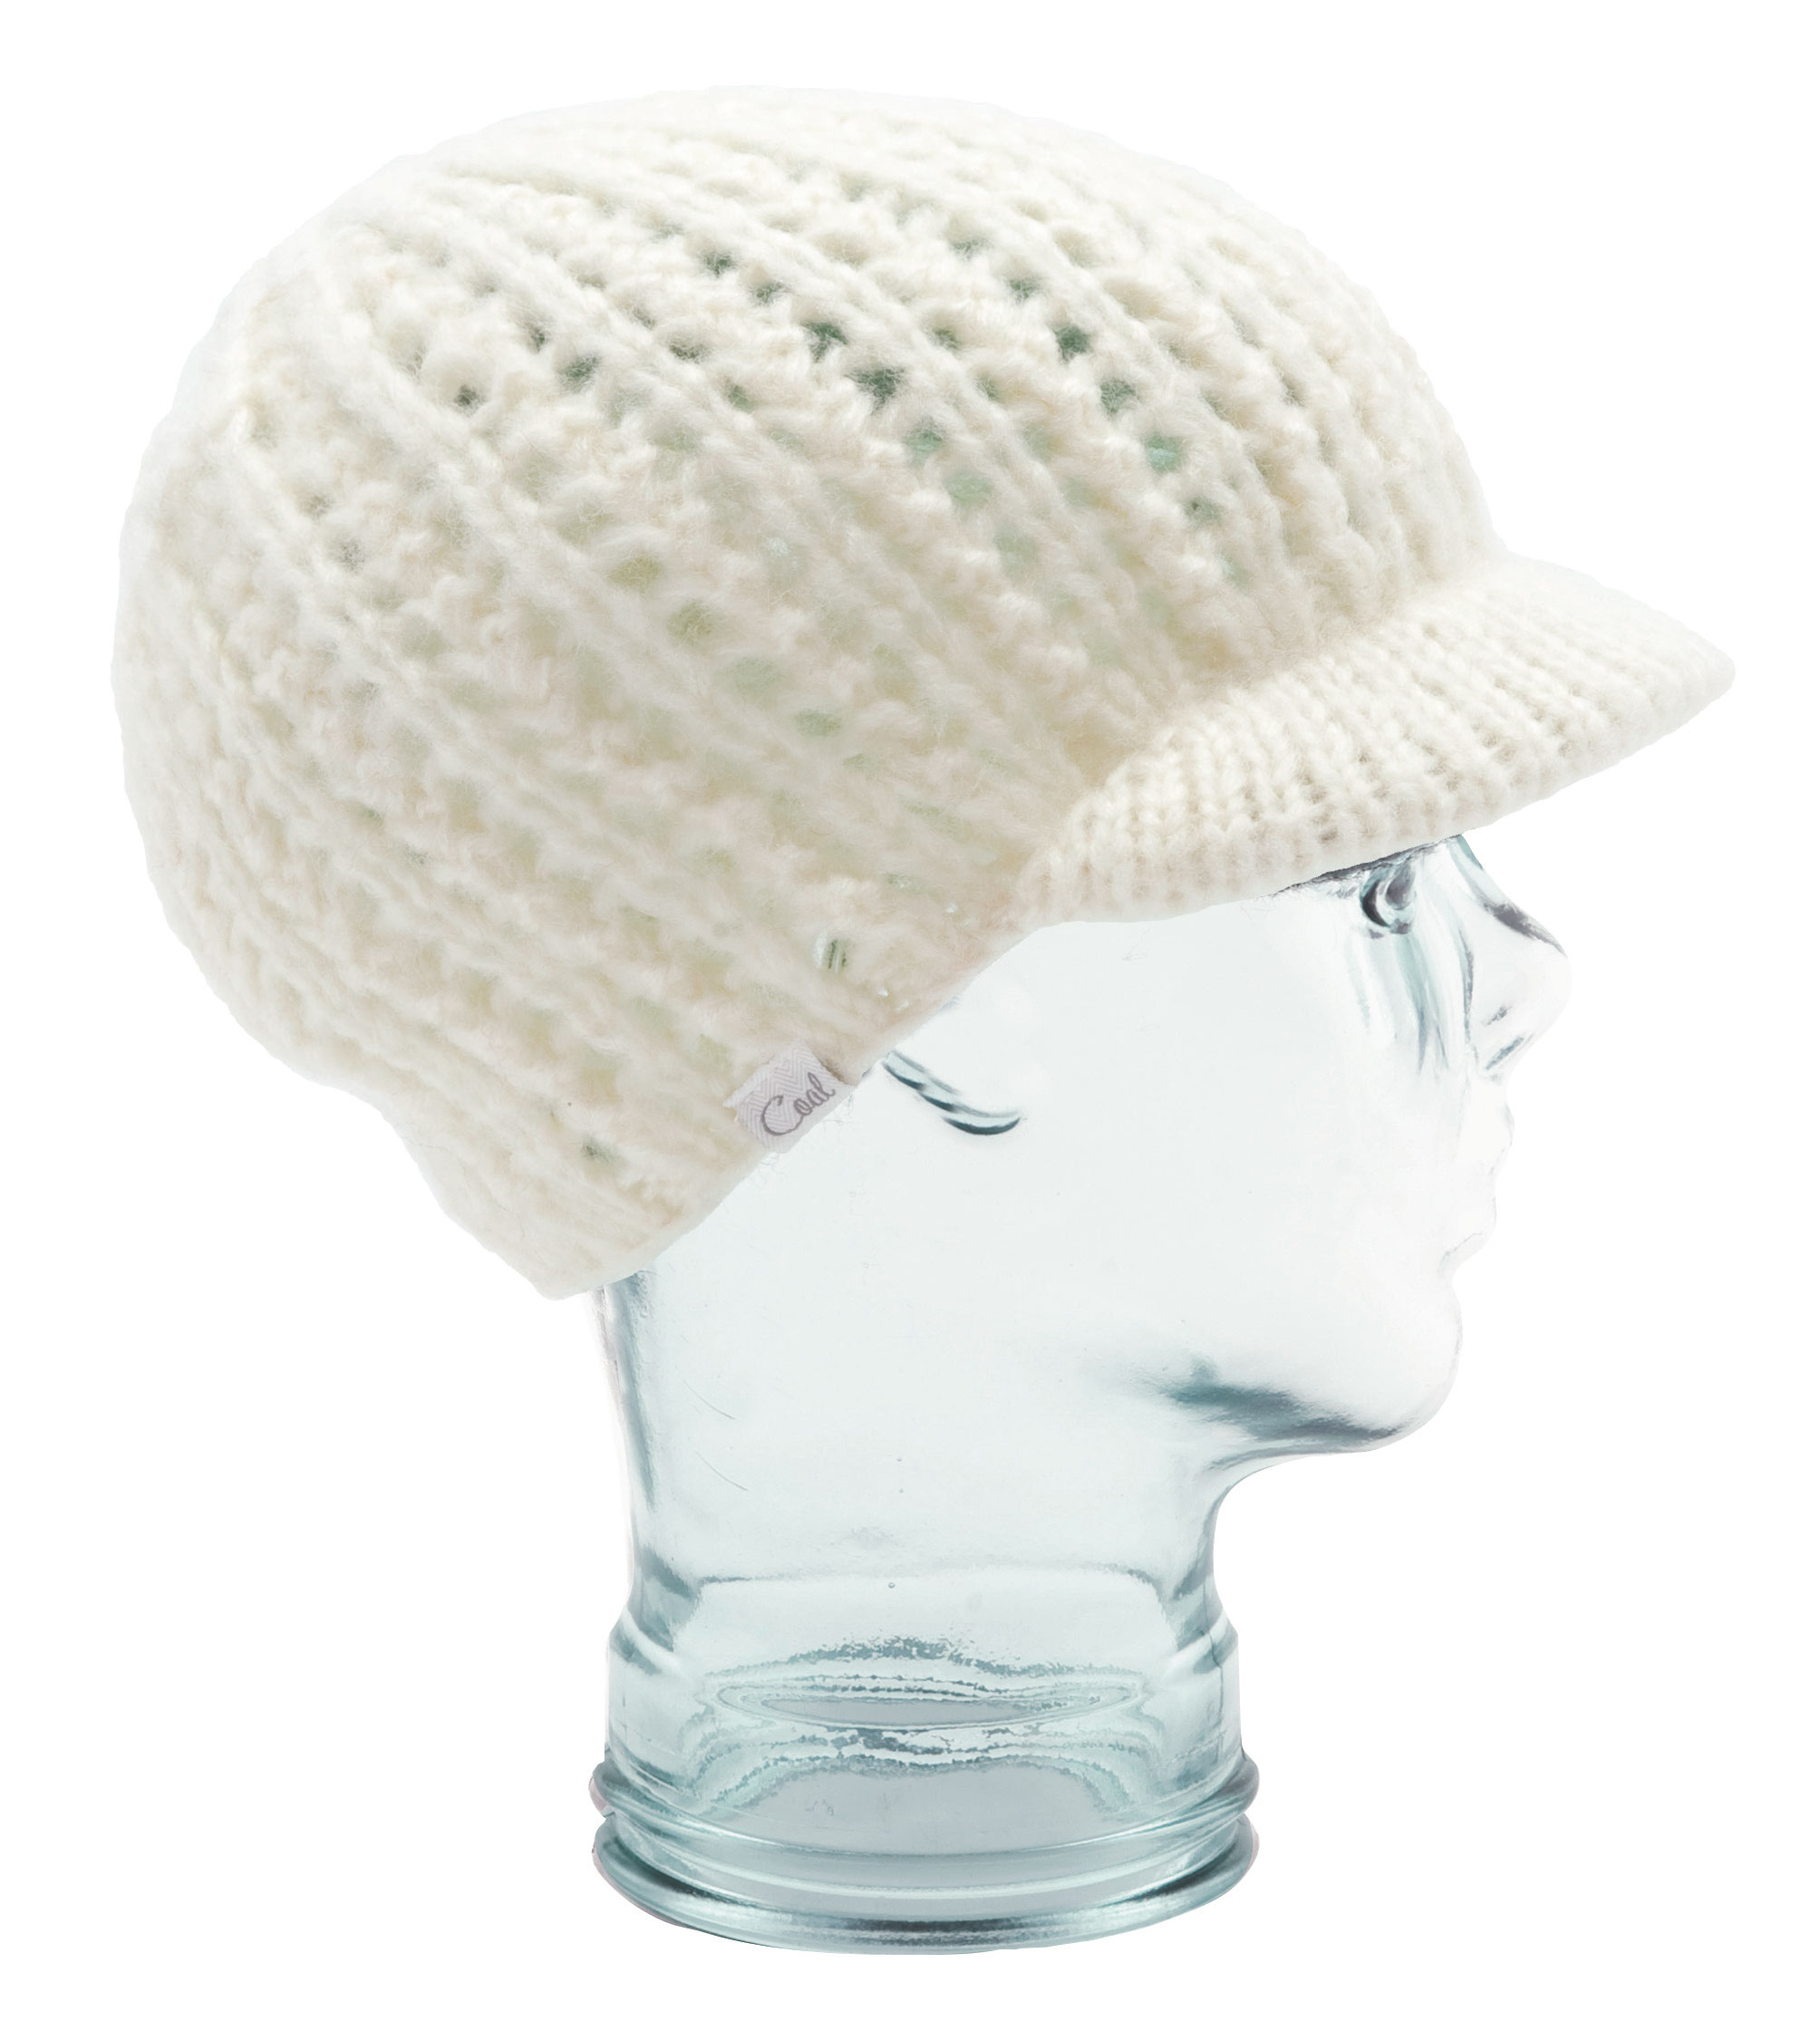 An oversized hand-knit brim beanie with beautiful texture and woven label detailing. Made from Mohair-like acrylic. - $24.95